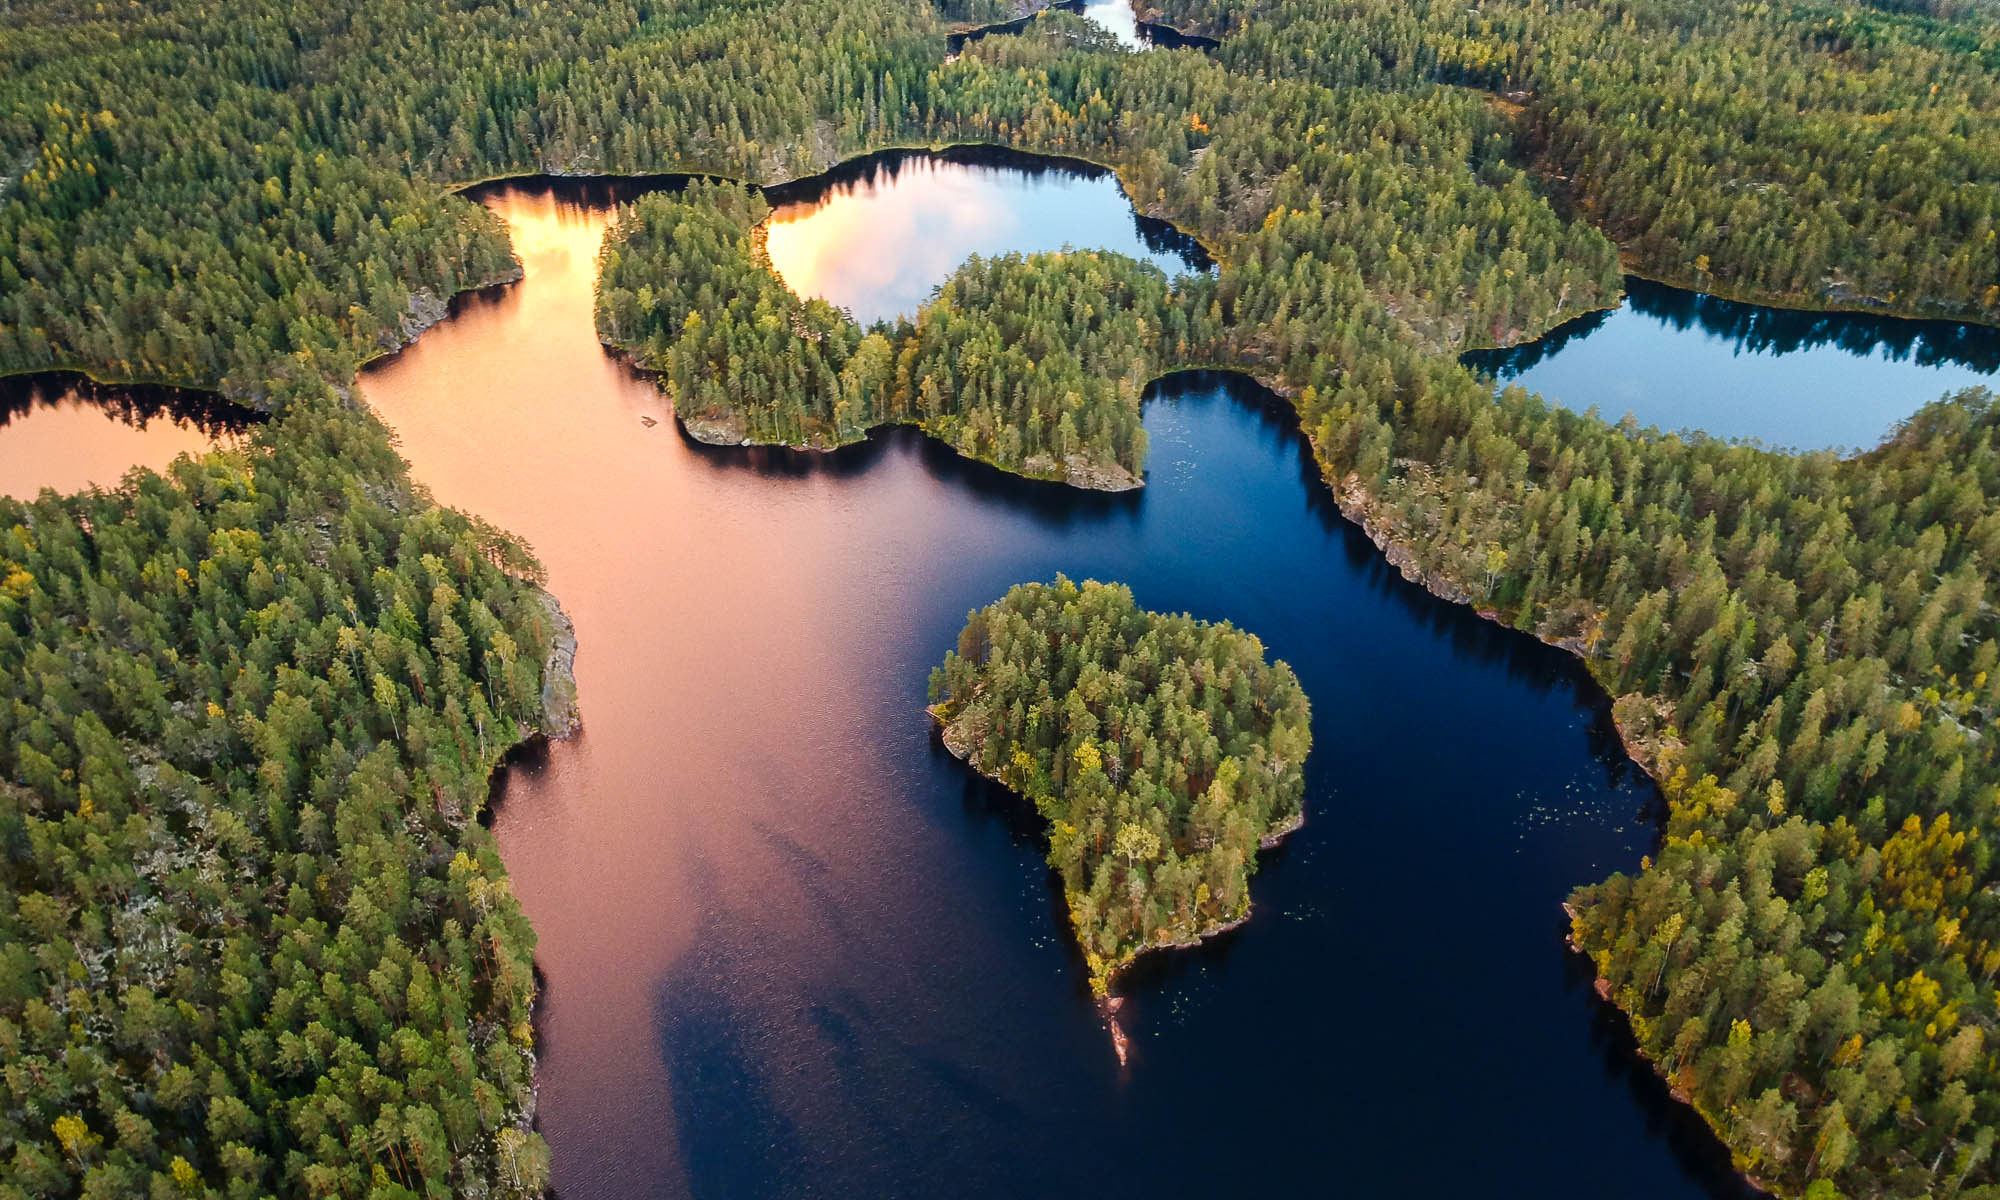 Nuuksio National Park in fall. Sunset over the typical Finnish forest and lakes. Nature near Helsinki, Finland.